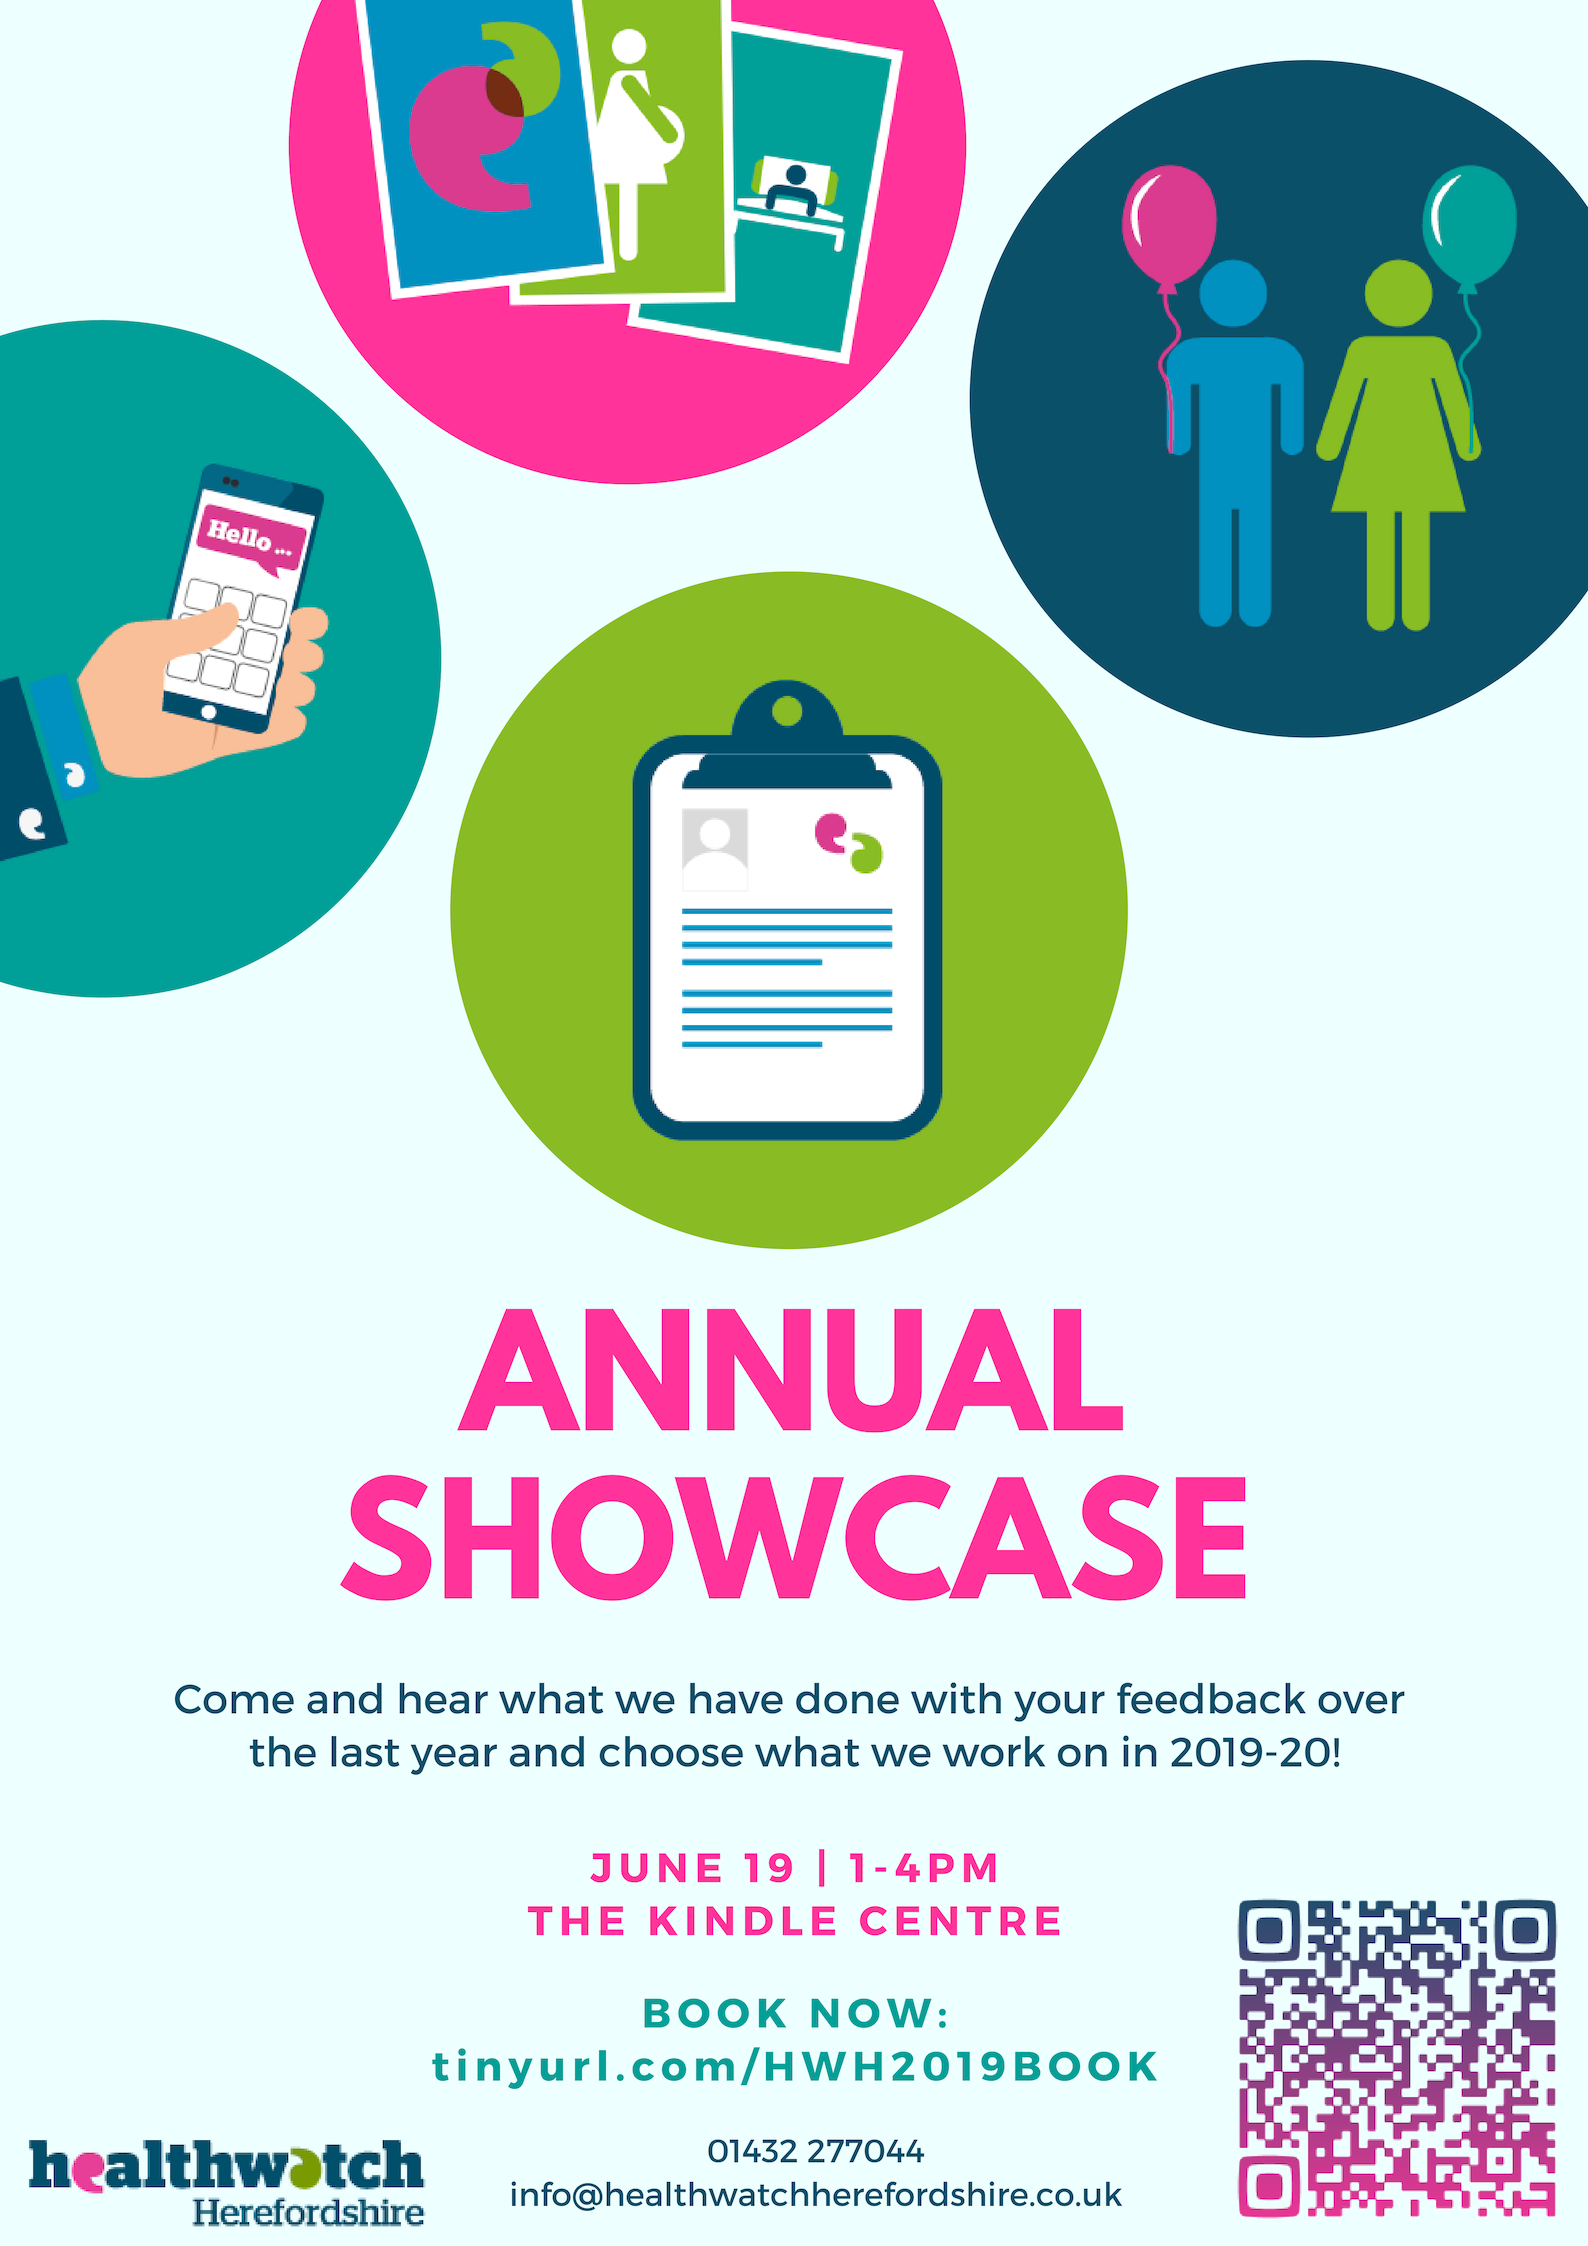 Healthwatch Herefordshire Annual Showcase